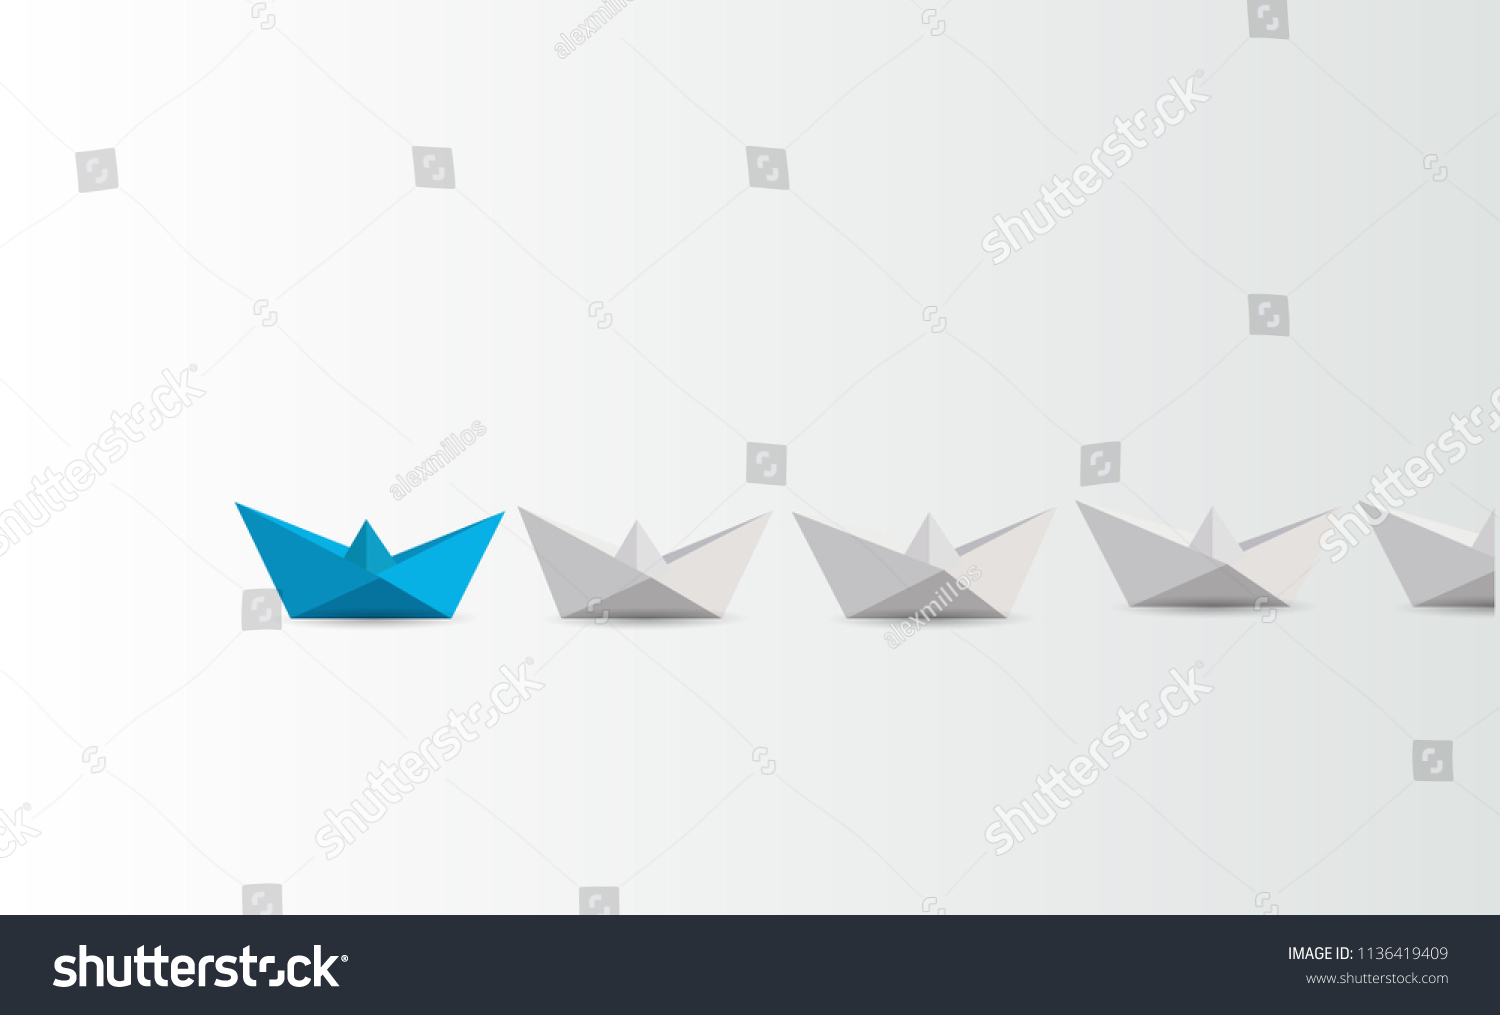 Leadership business concept vector with blue paper boat leading white. business concept. leadership concept. illustration design graphic #1136419409